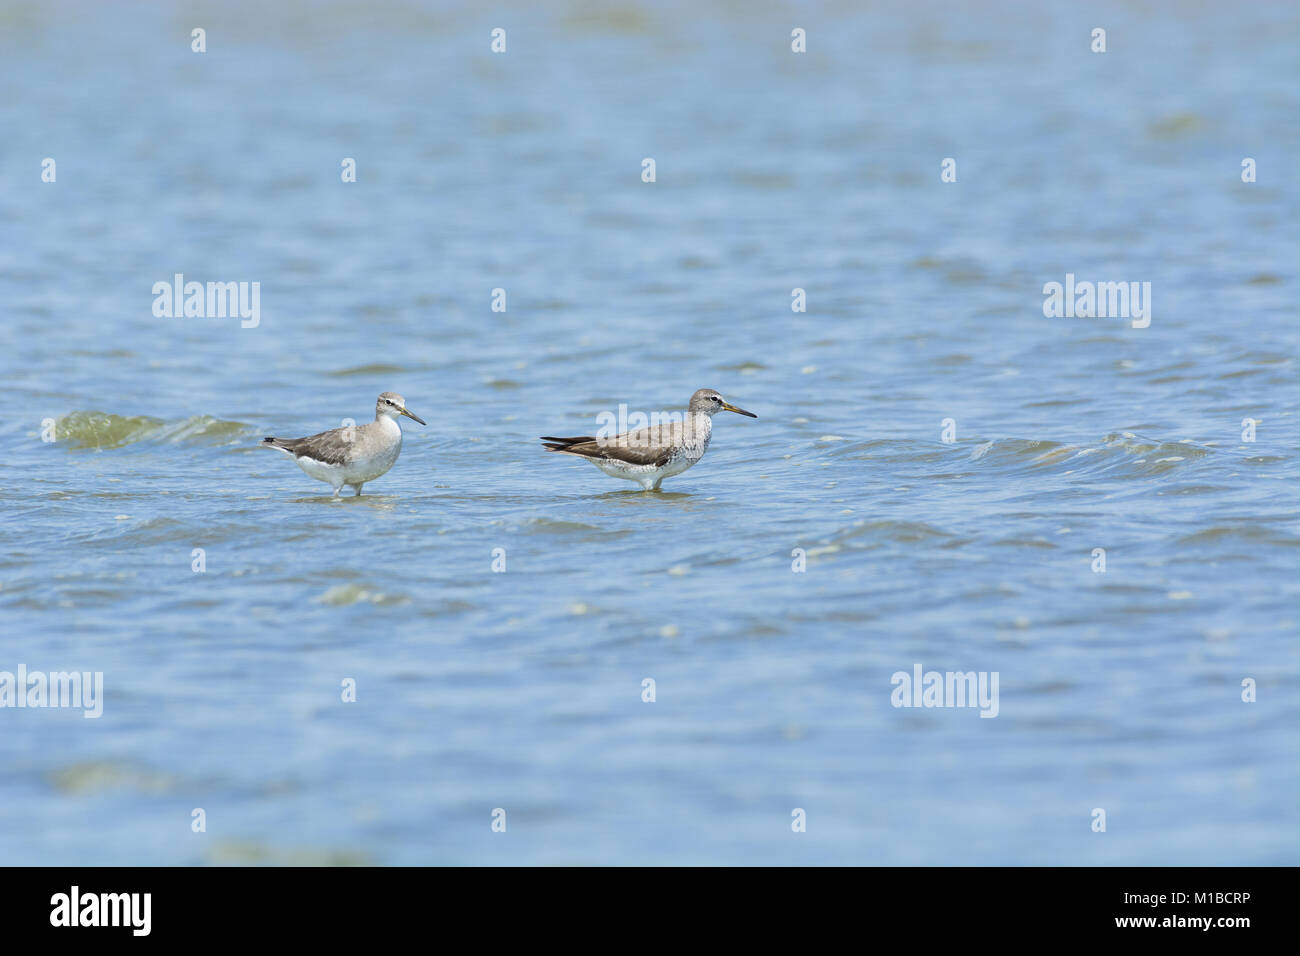 2 Grey-tailed Tattler (Tringa brevipes) on the sea. - Stock Image